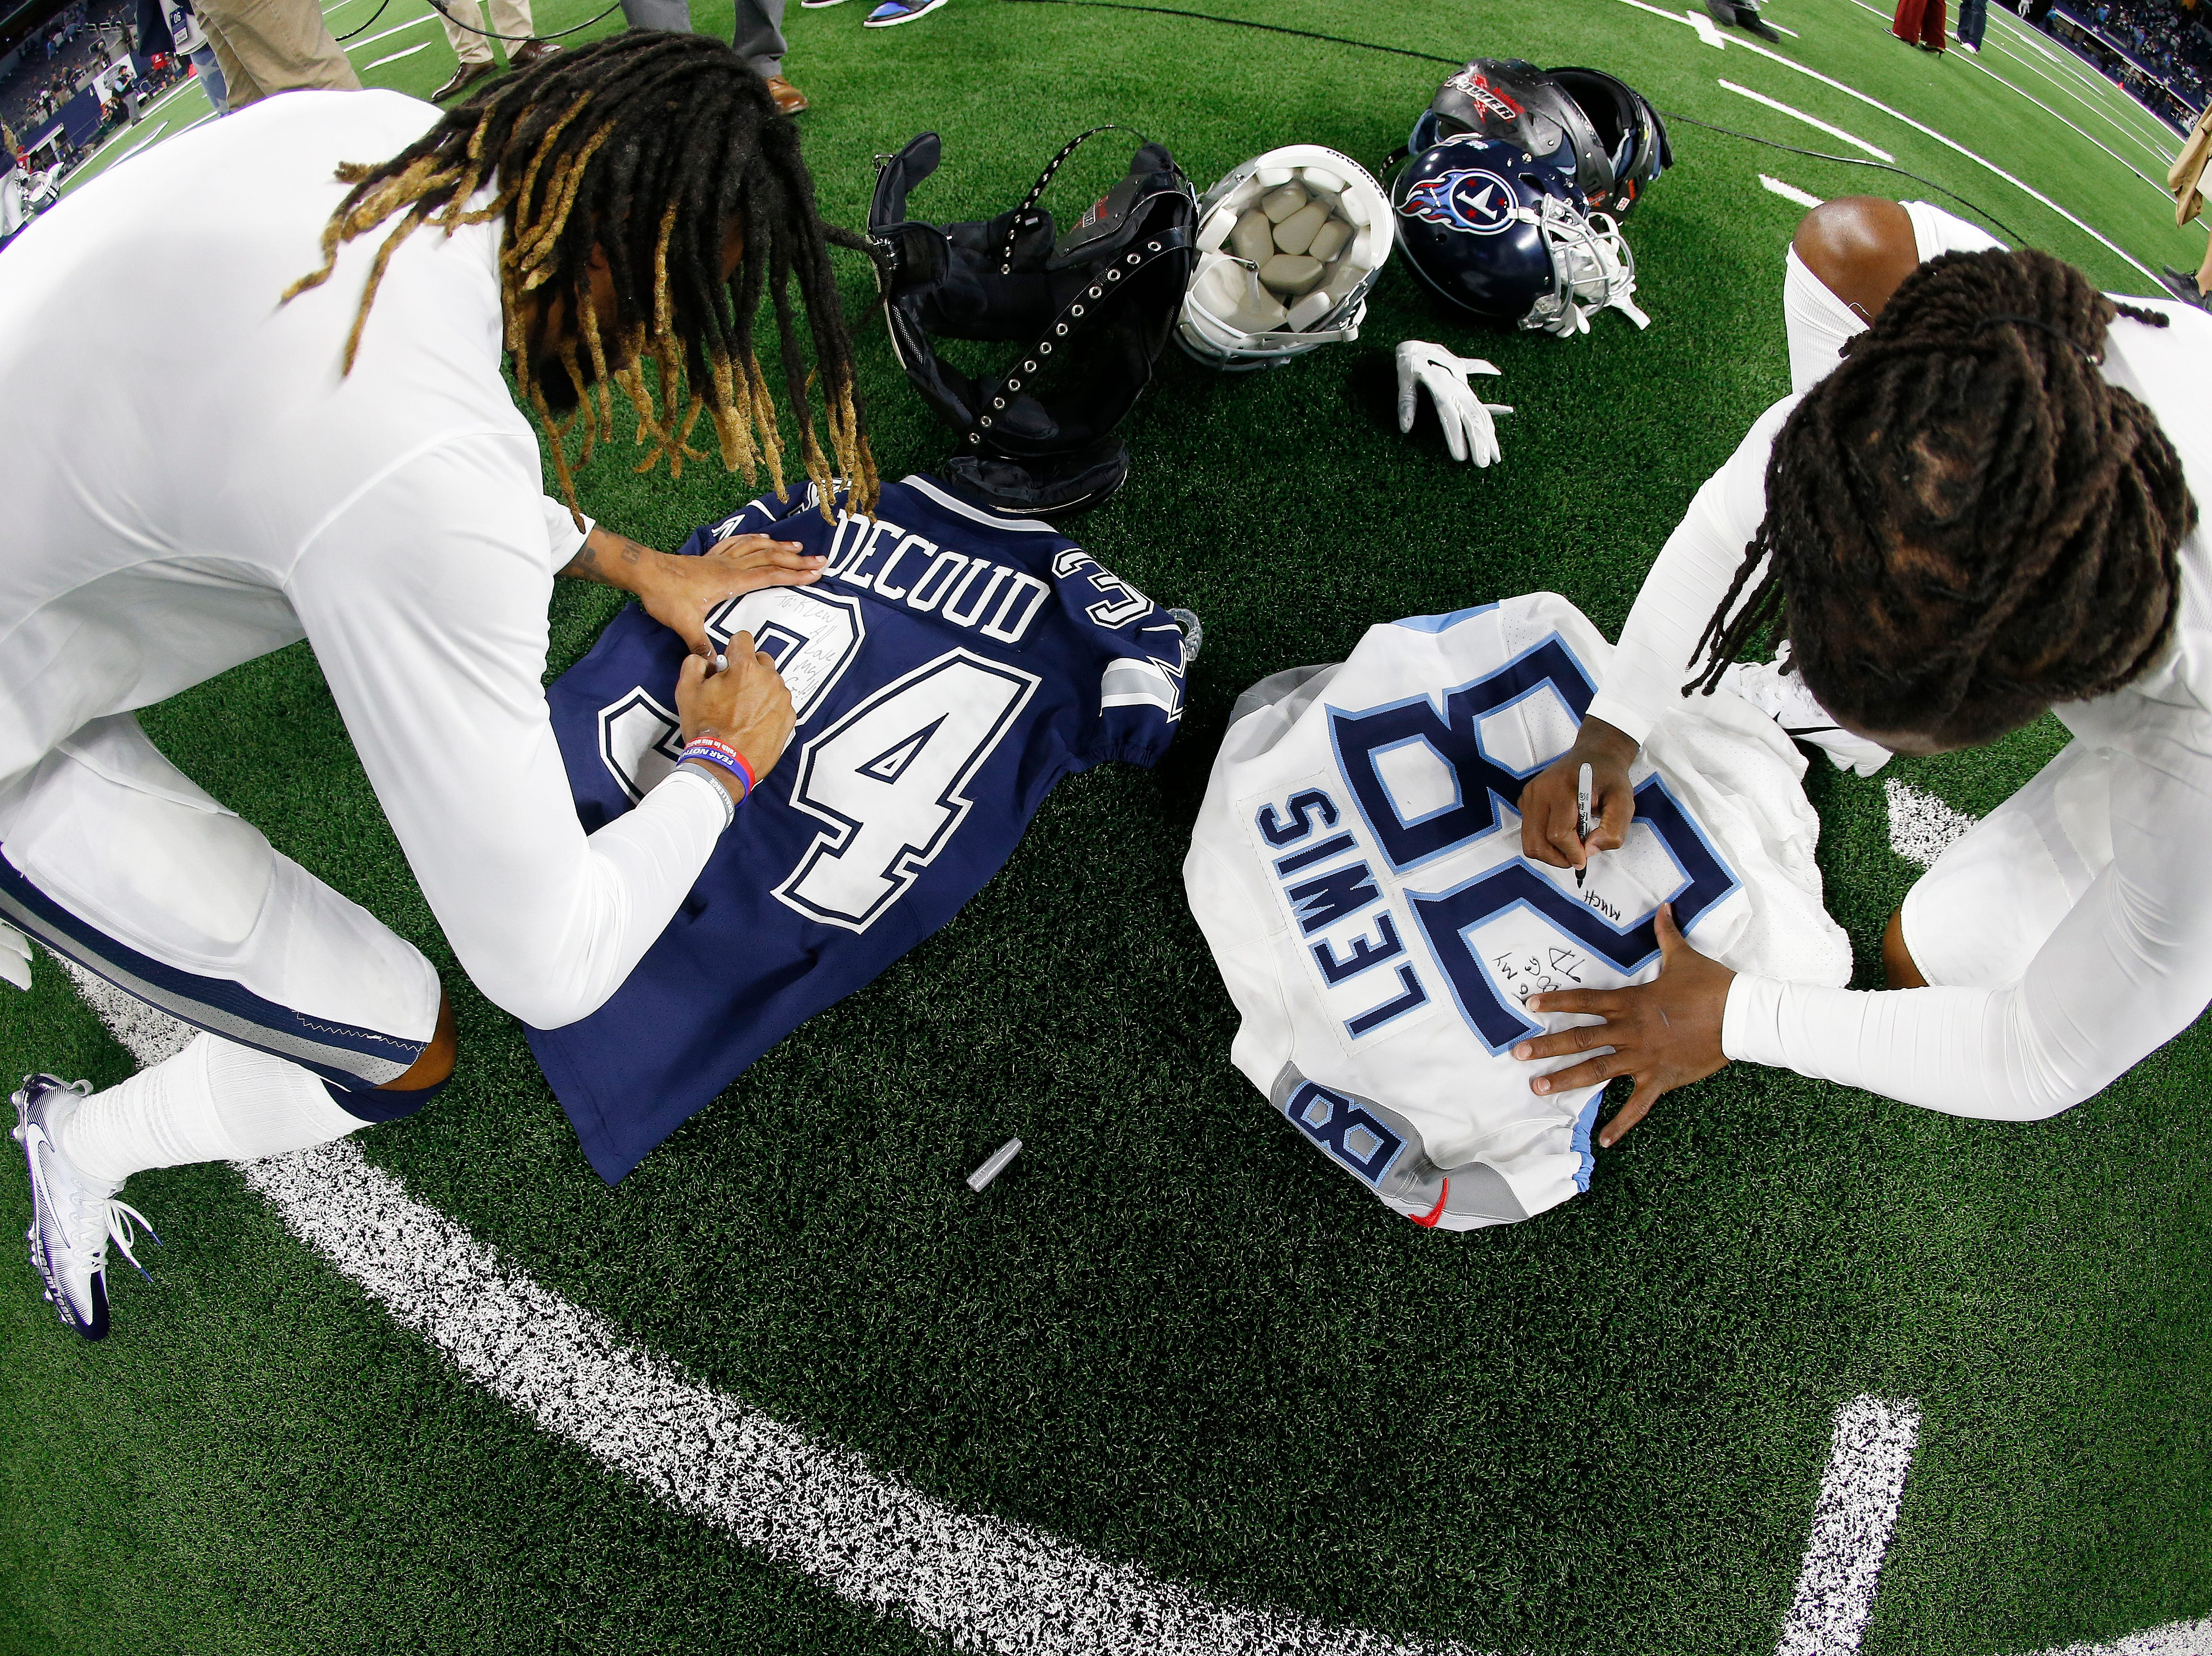 Tennessee Titans strong safety Kendrick Lewis (28) signs his jersey as Dallas Cowboys Treston Decoud does the same after an NFL football game, Monday, Nov. 5, 2018, in Arlington, Texas. The Tennessee Titans won 28-14.